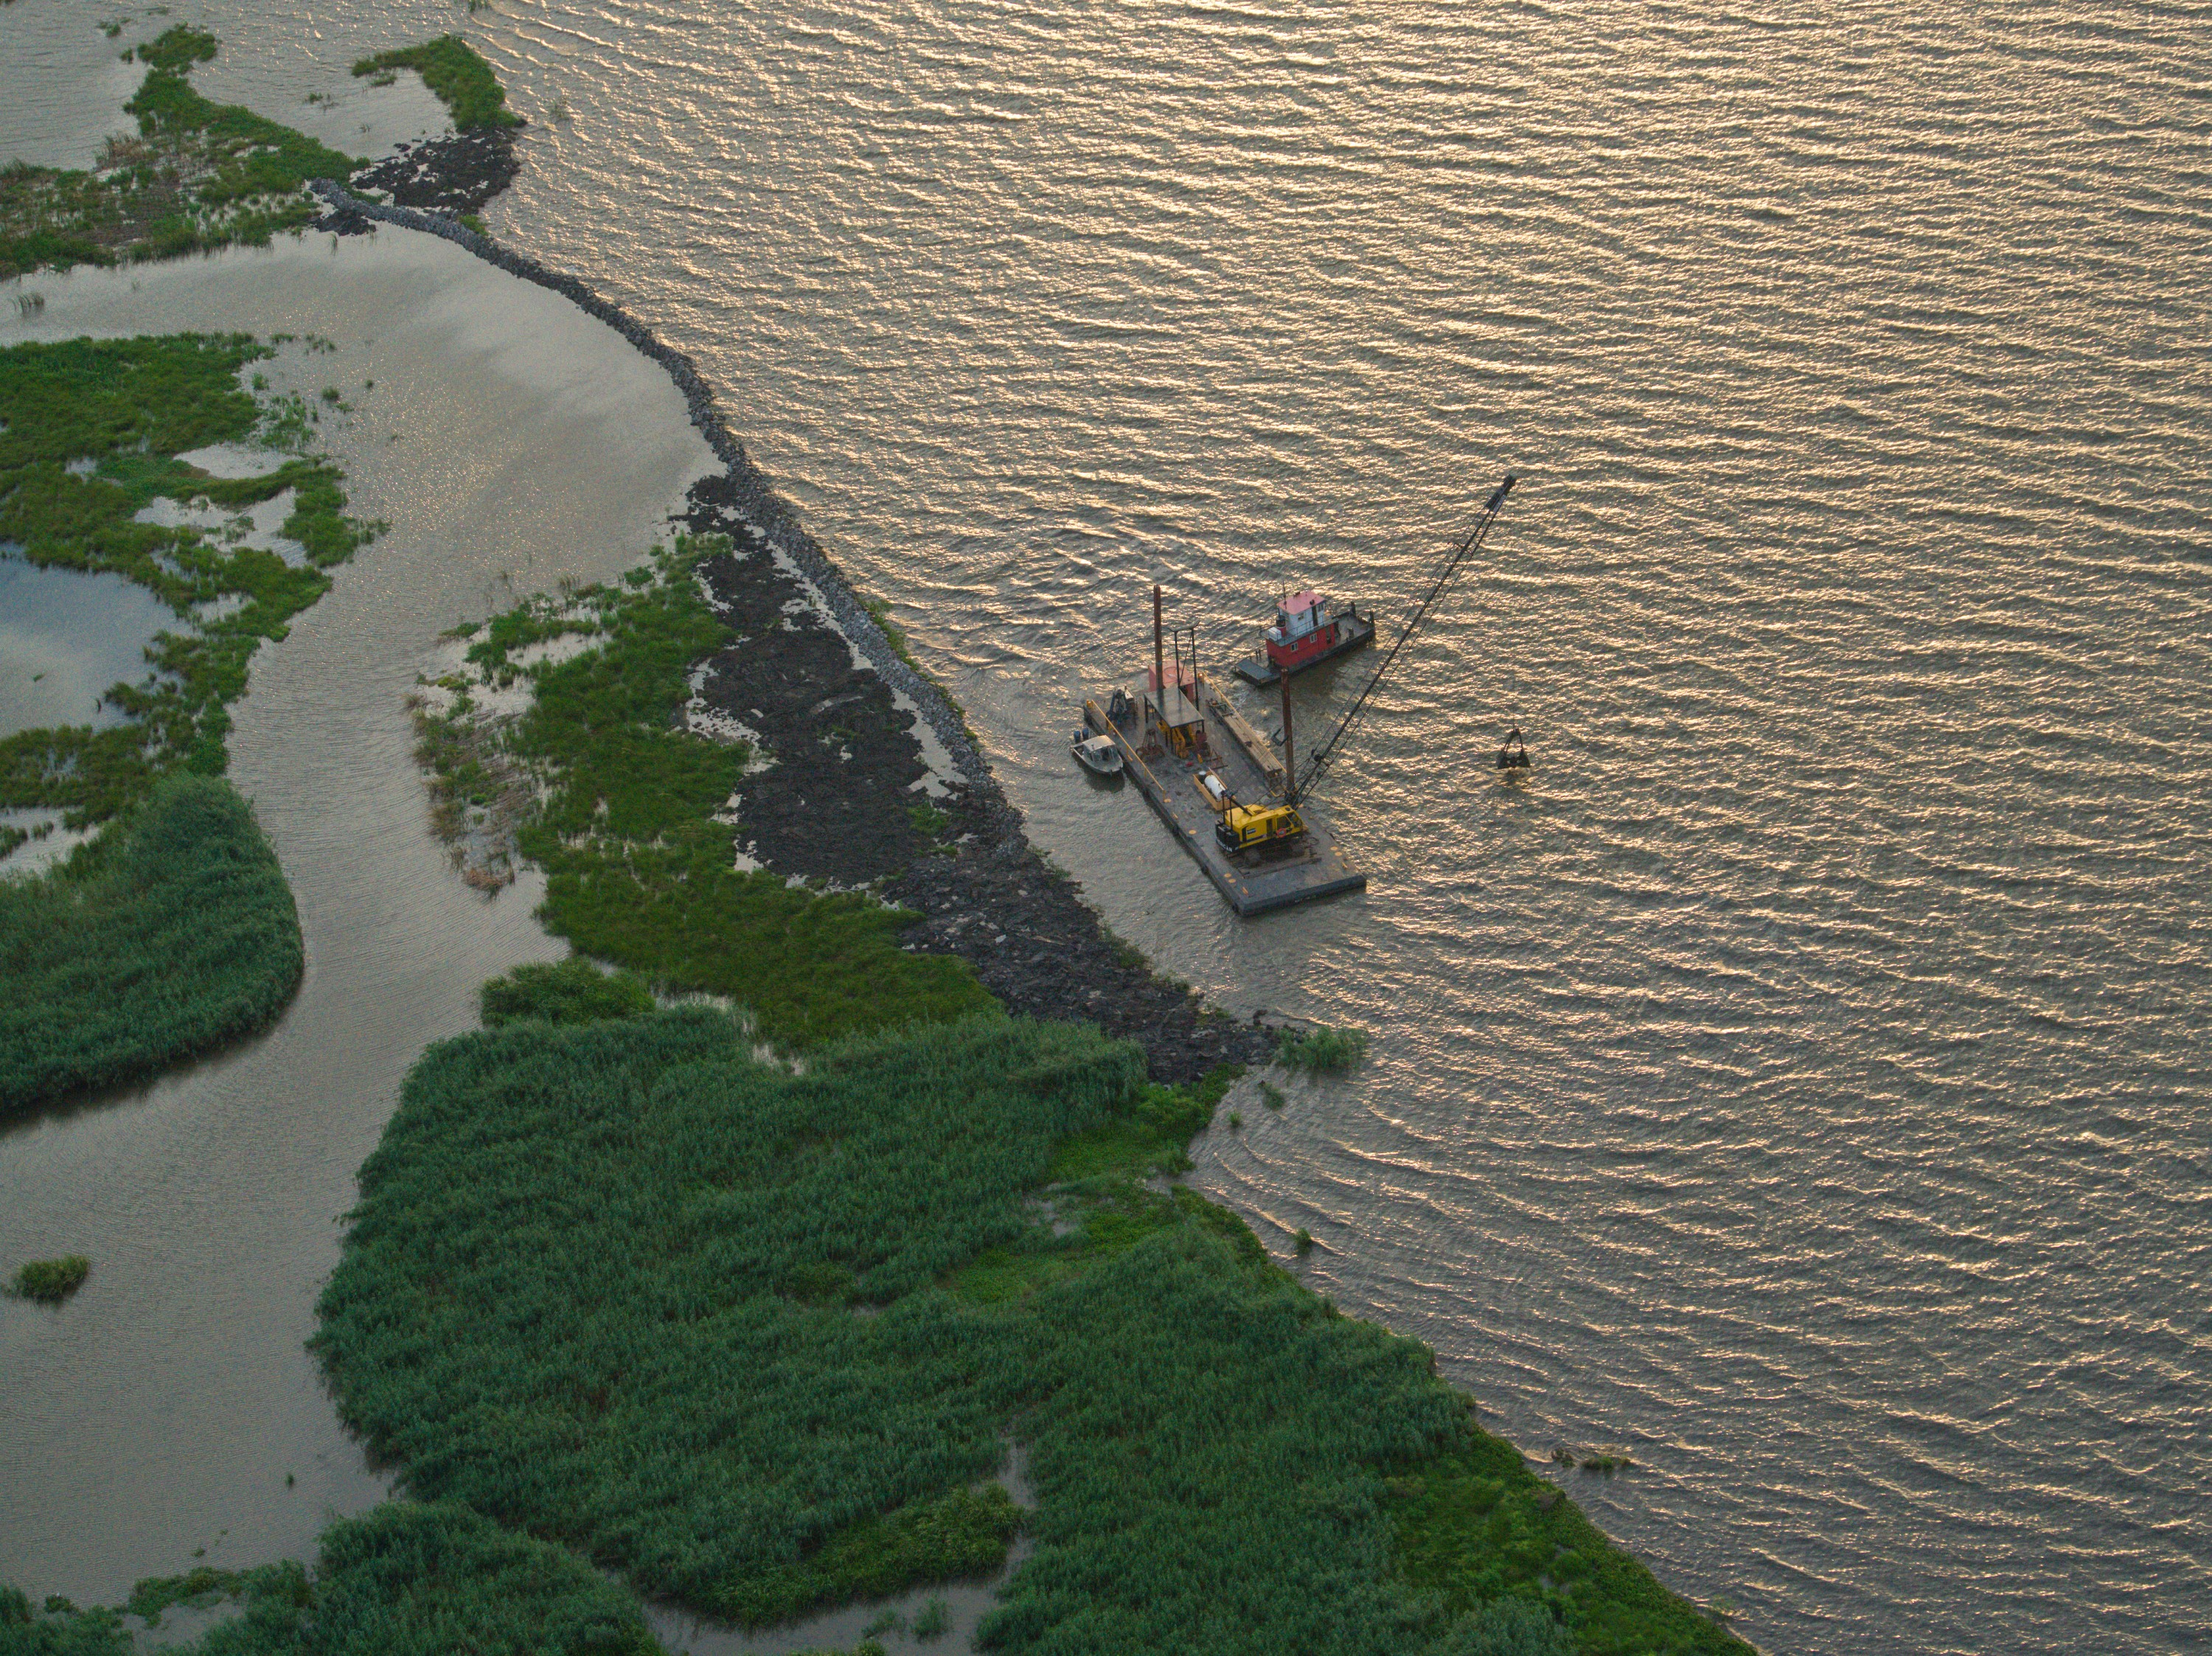 aerial view of barge near shoreline